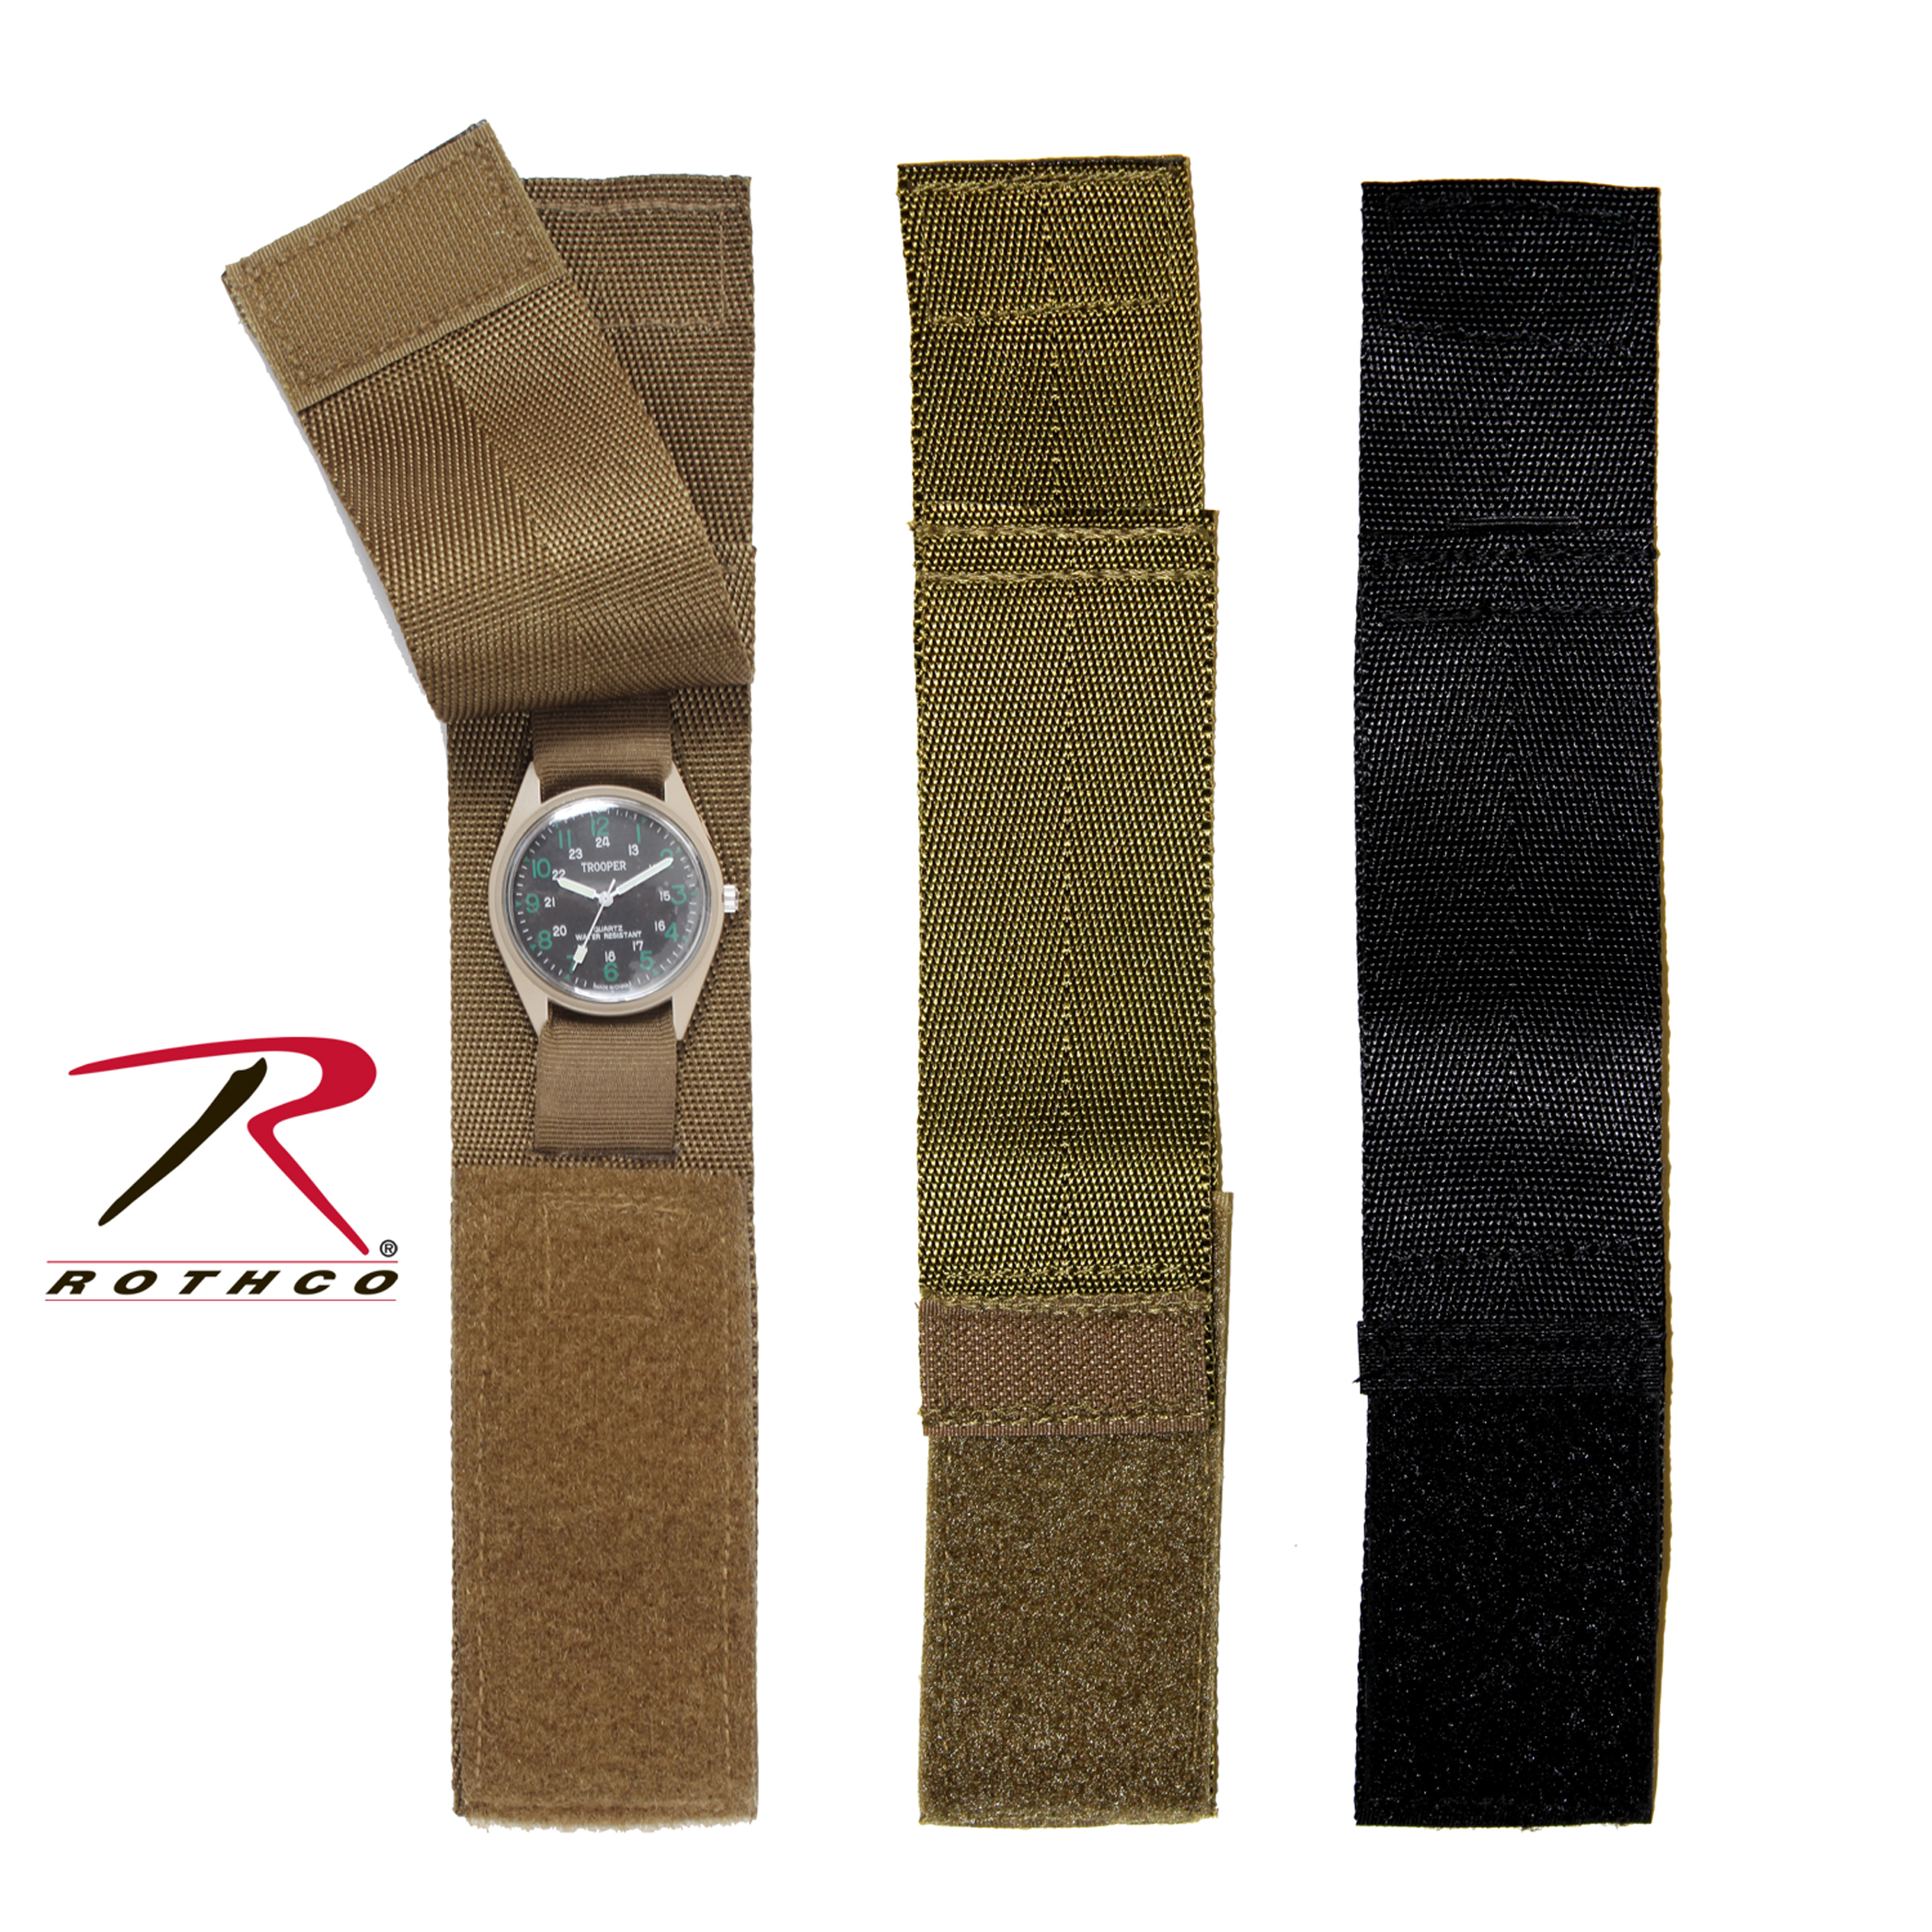 quickgear black products tatical watches veterans military collections watch style tactical